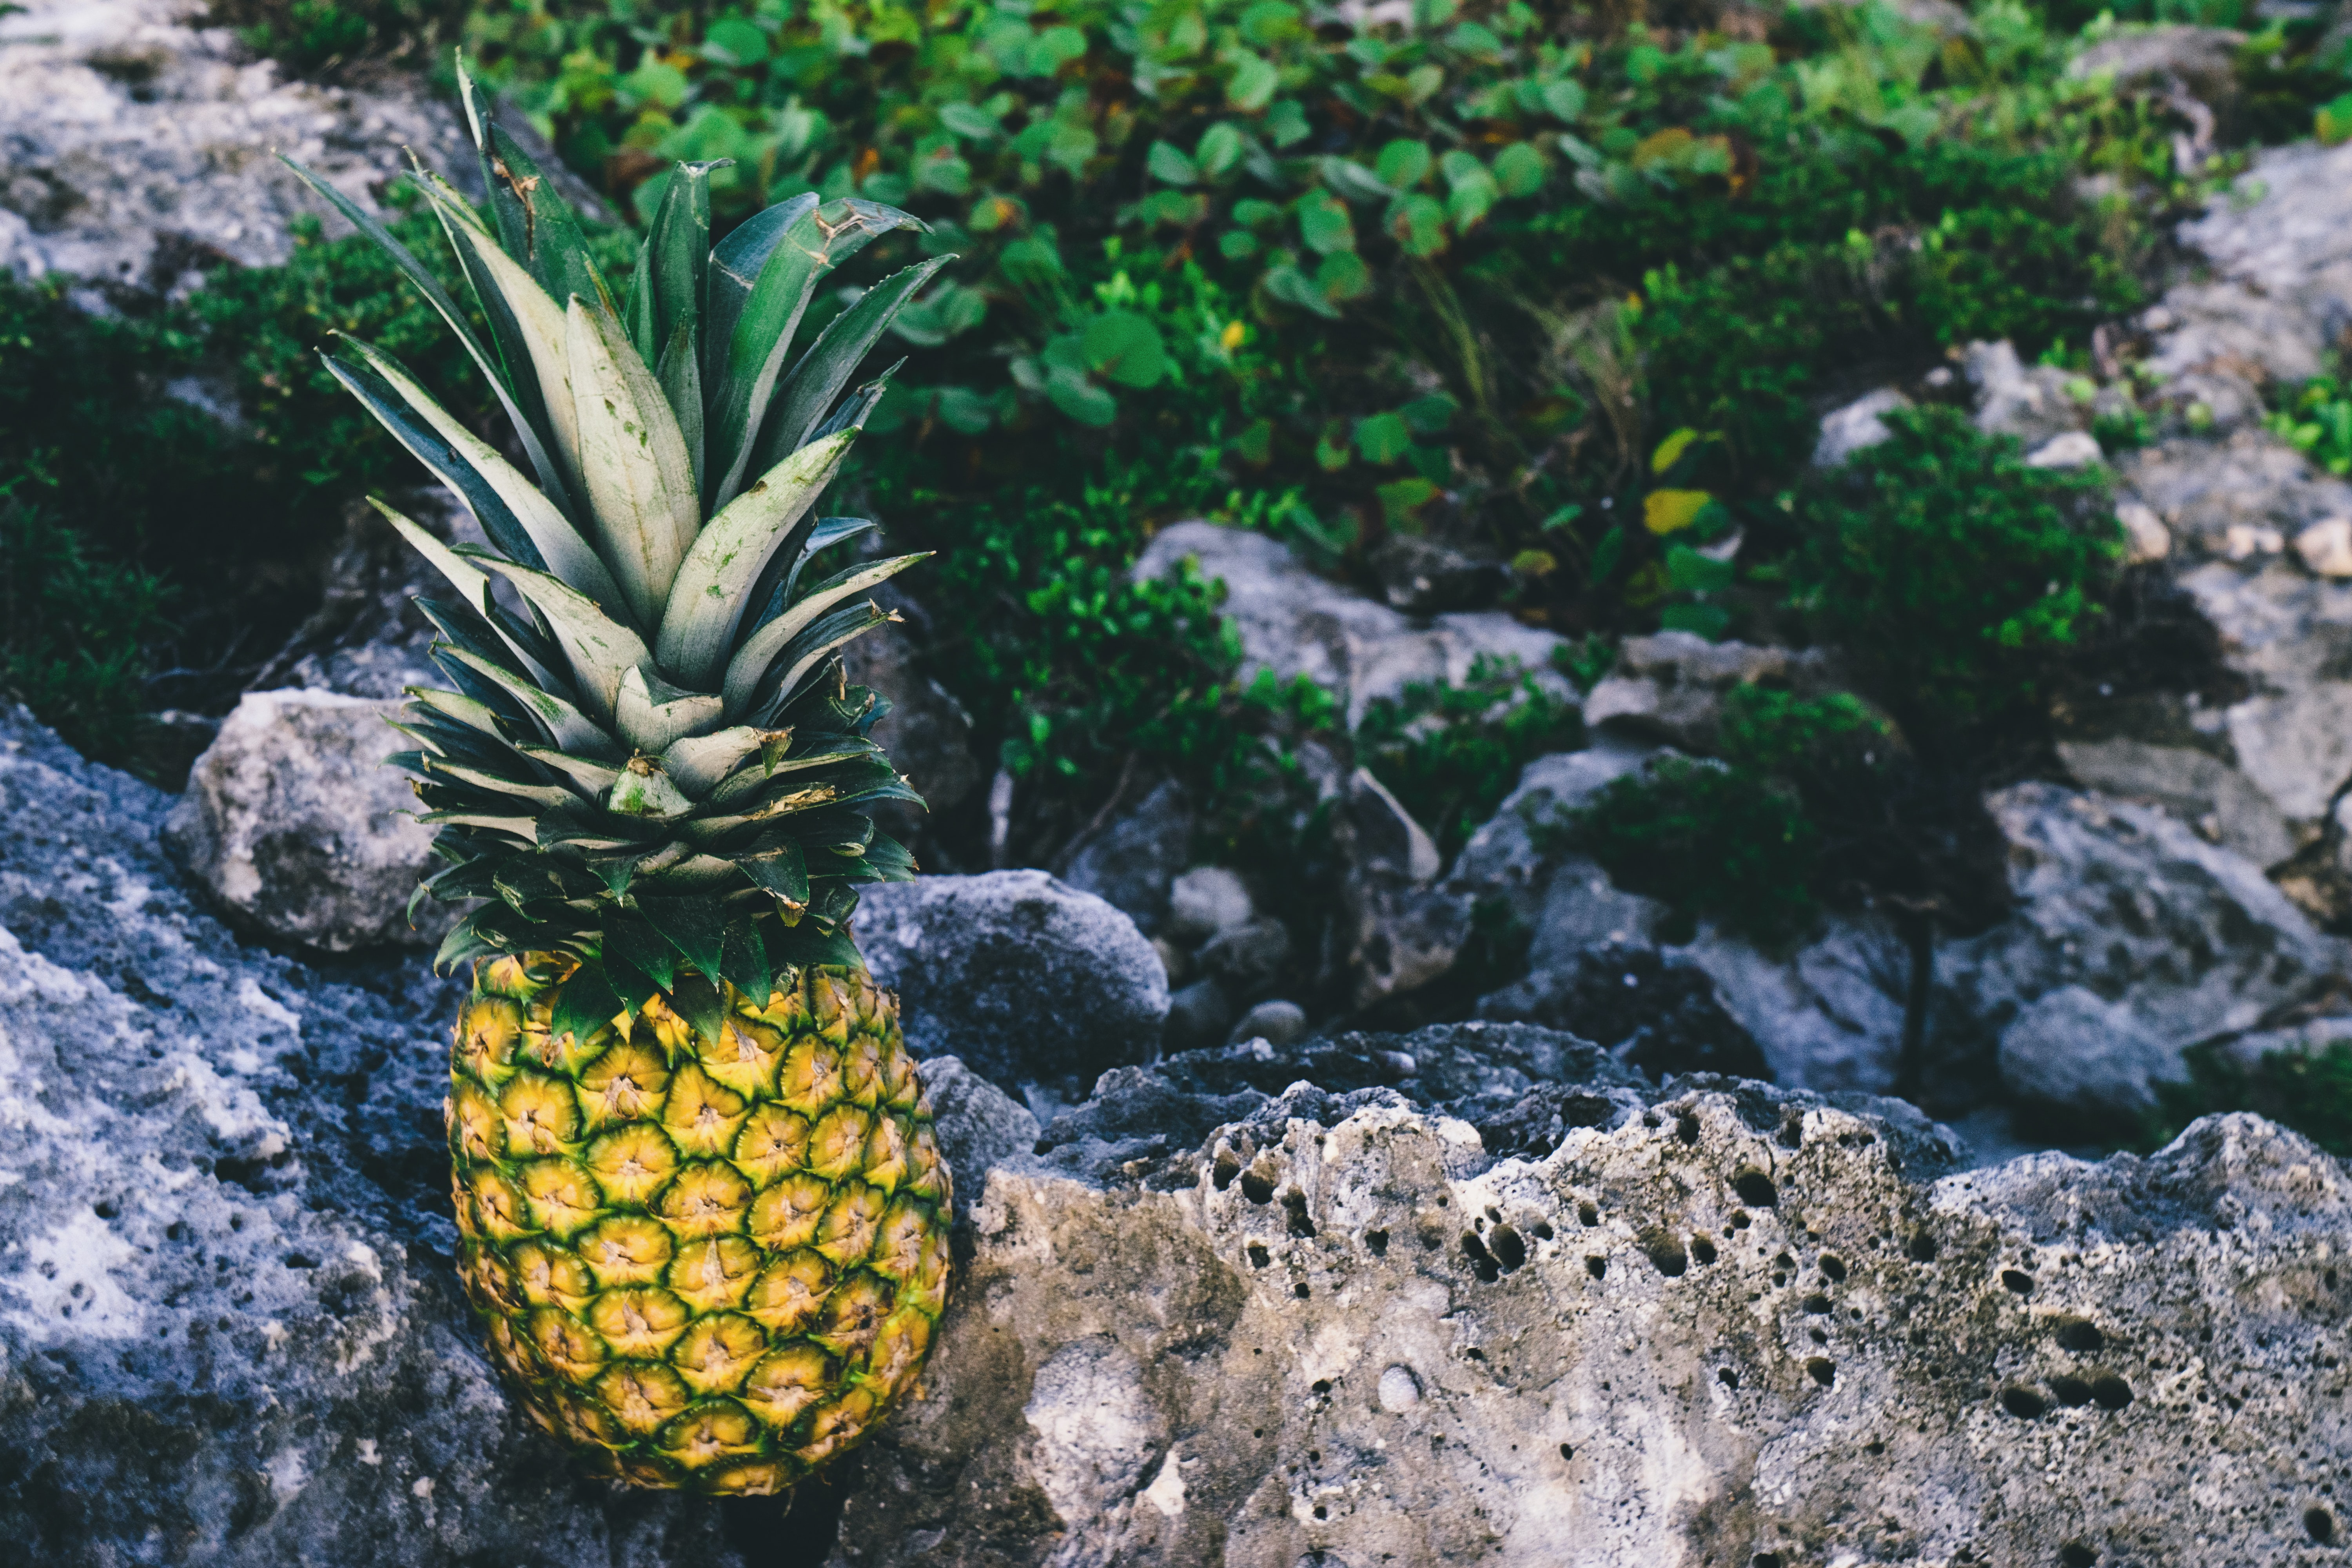 pineapple on rock during daytime